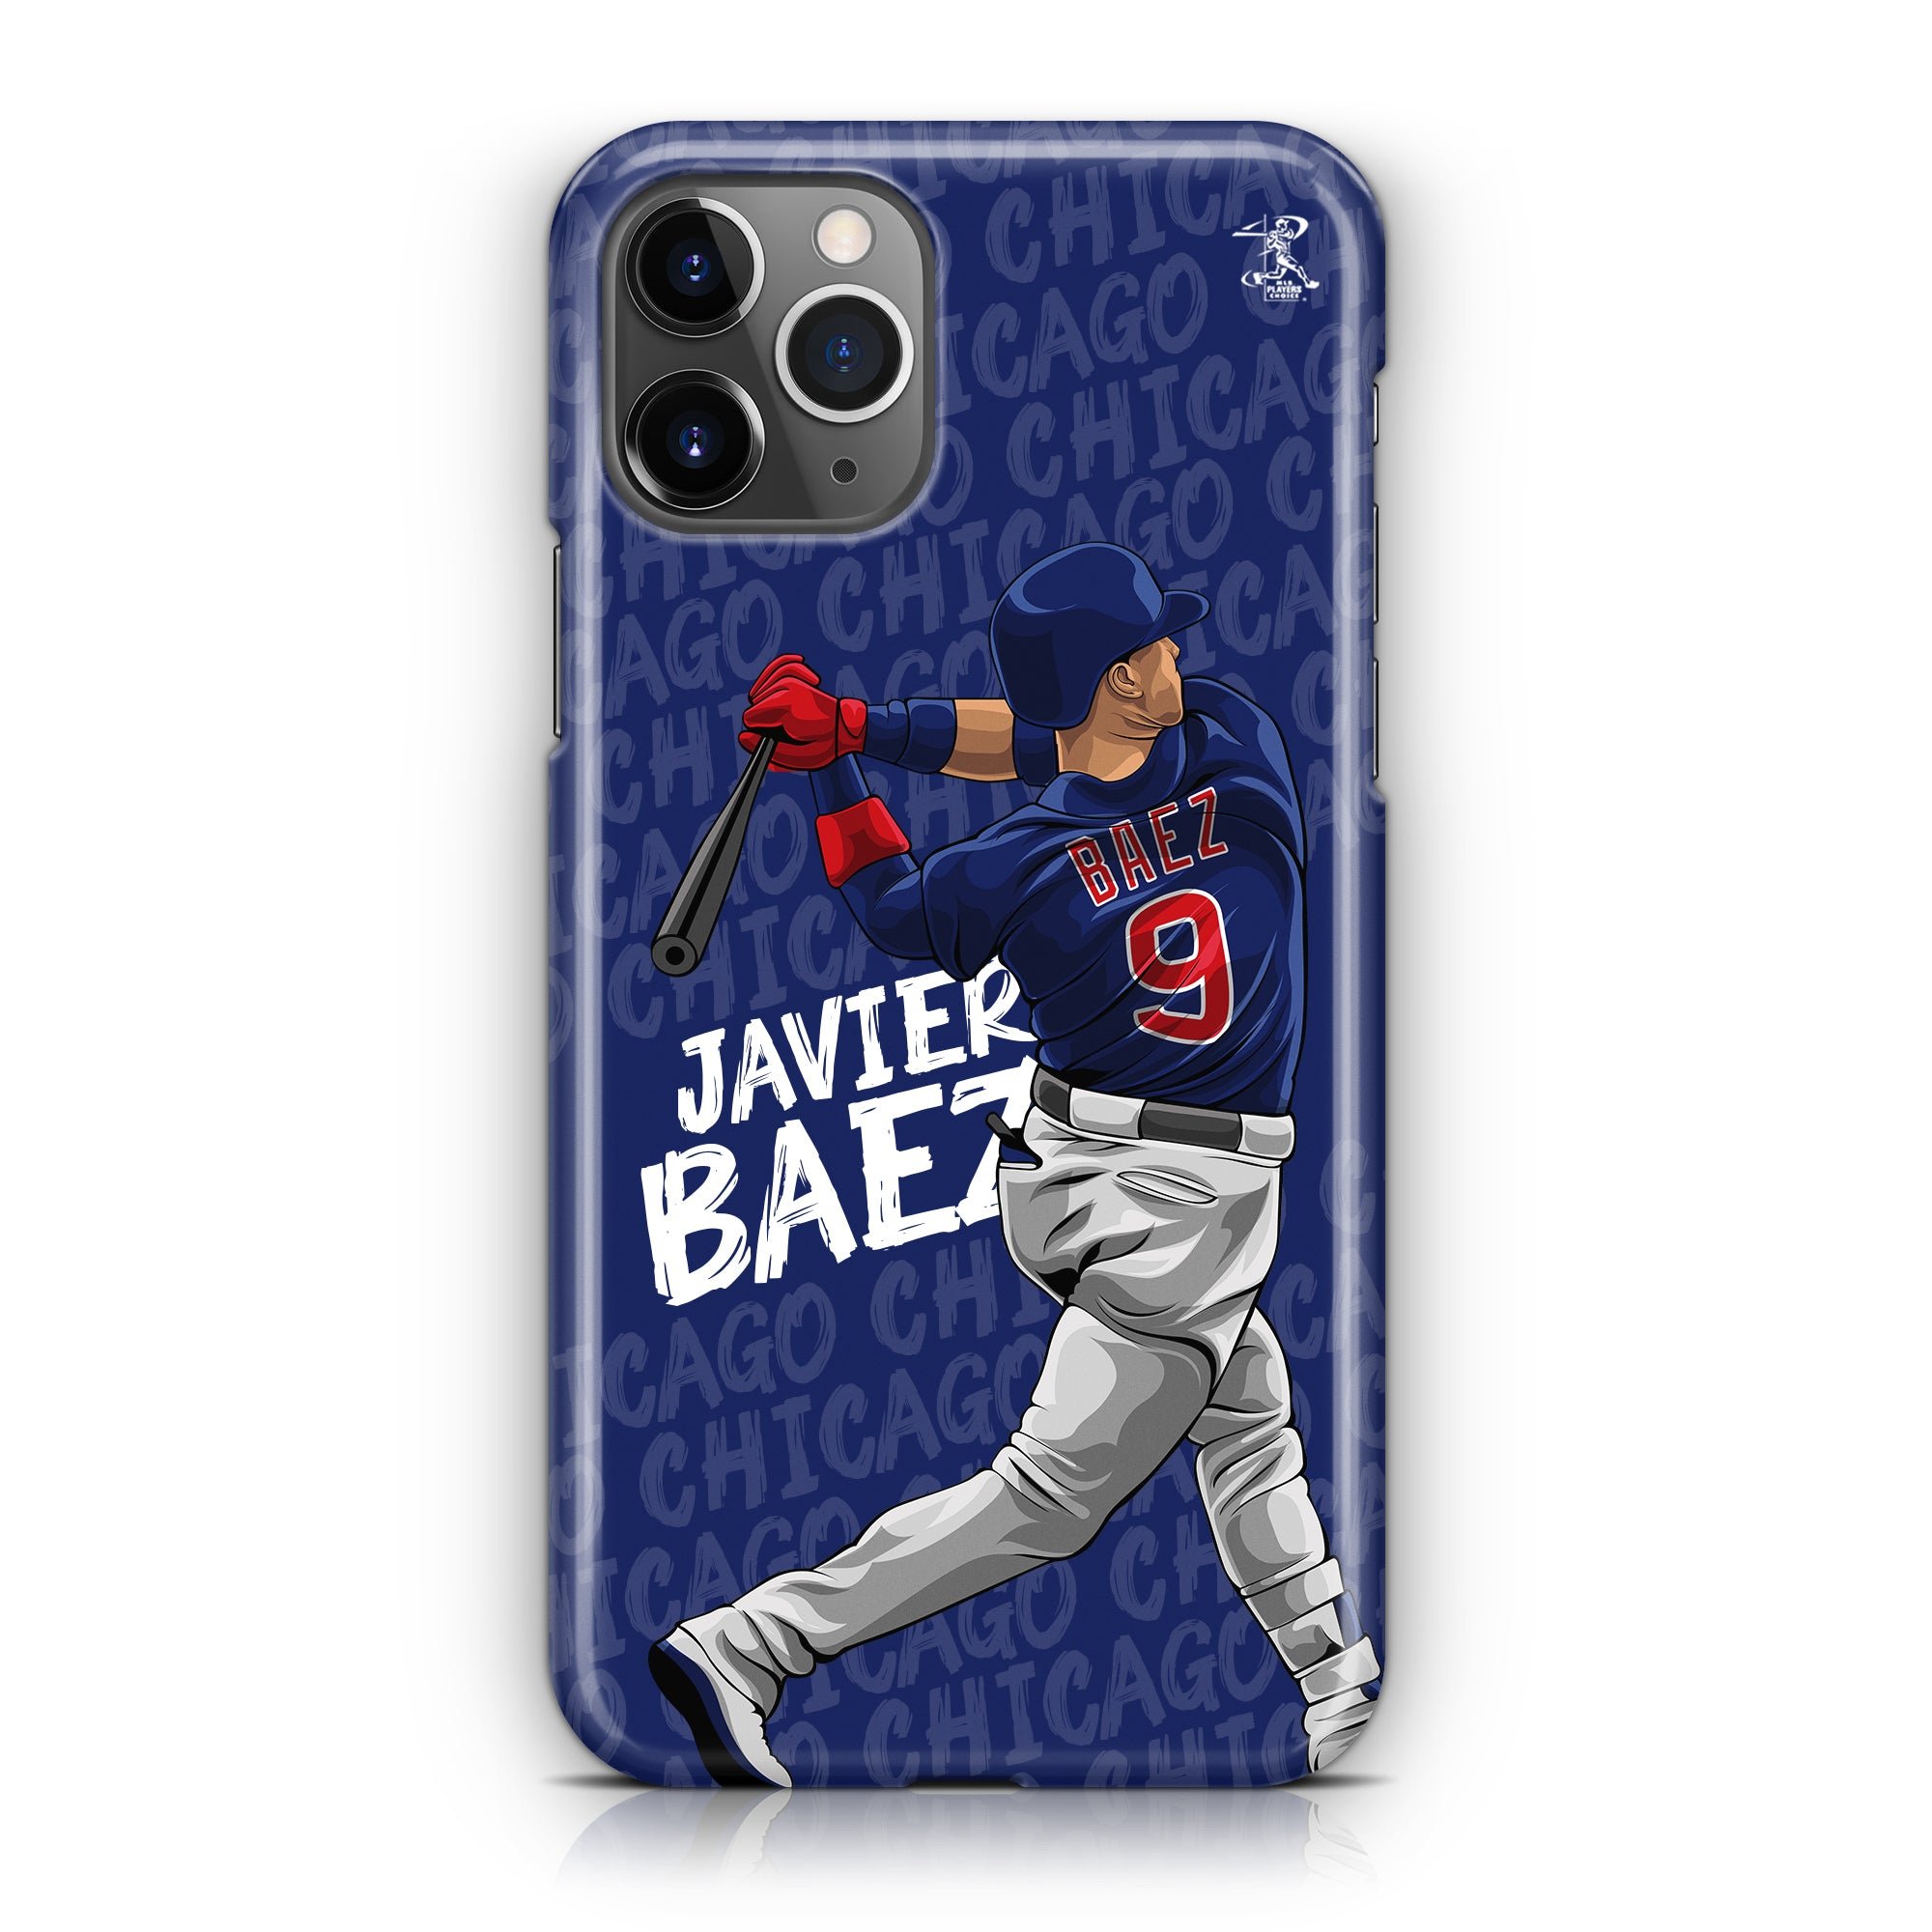 Baez Star Series 2.0 Case